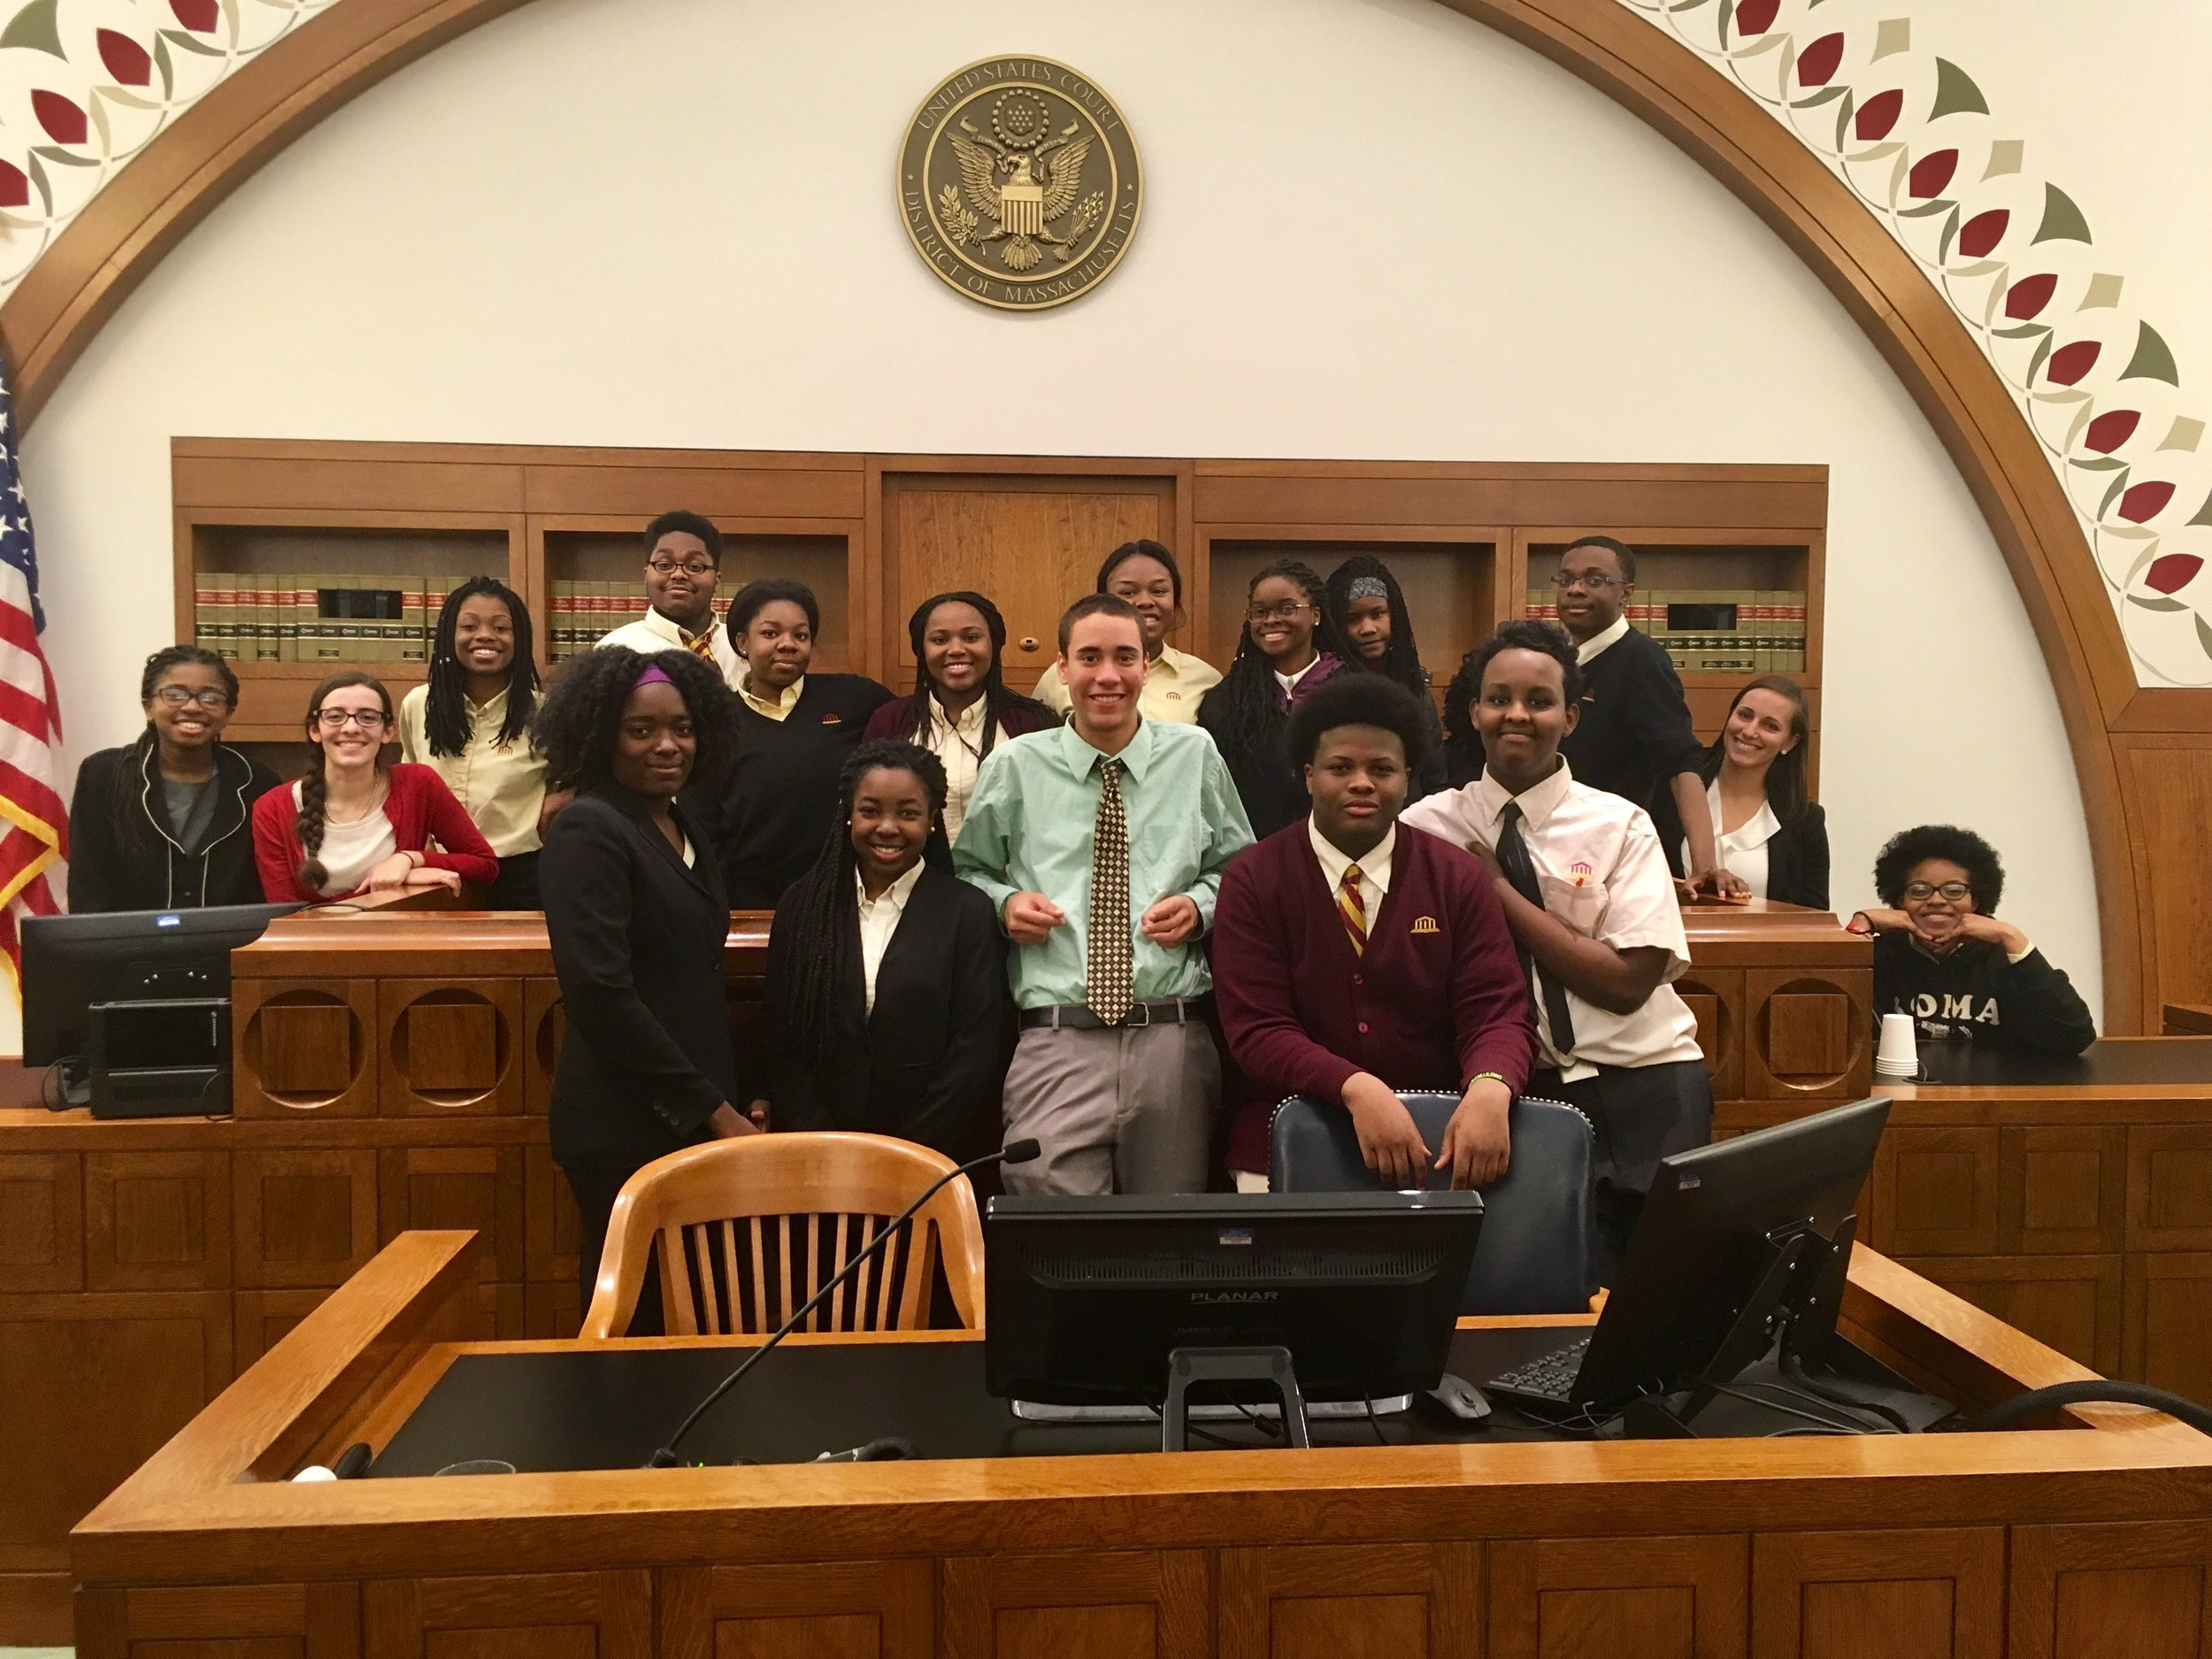 The Mock Trial team had another fantastic season, beating out Brookline High School and Community Charter School of Cambridge and falling to the Winsor School by a mere 6 points.